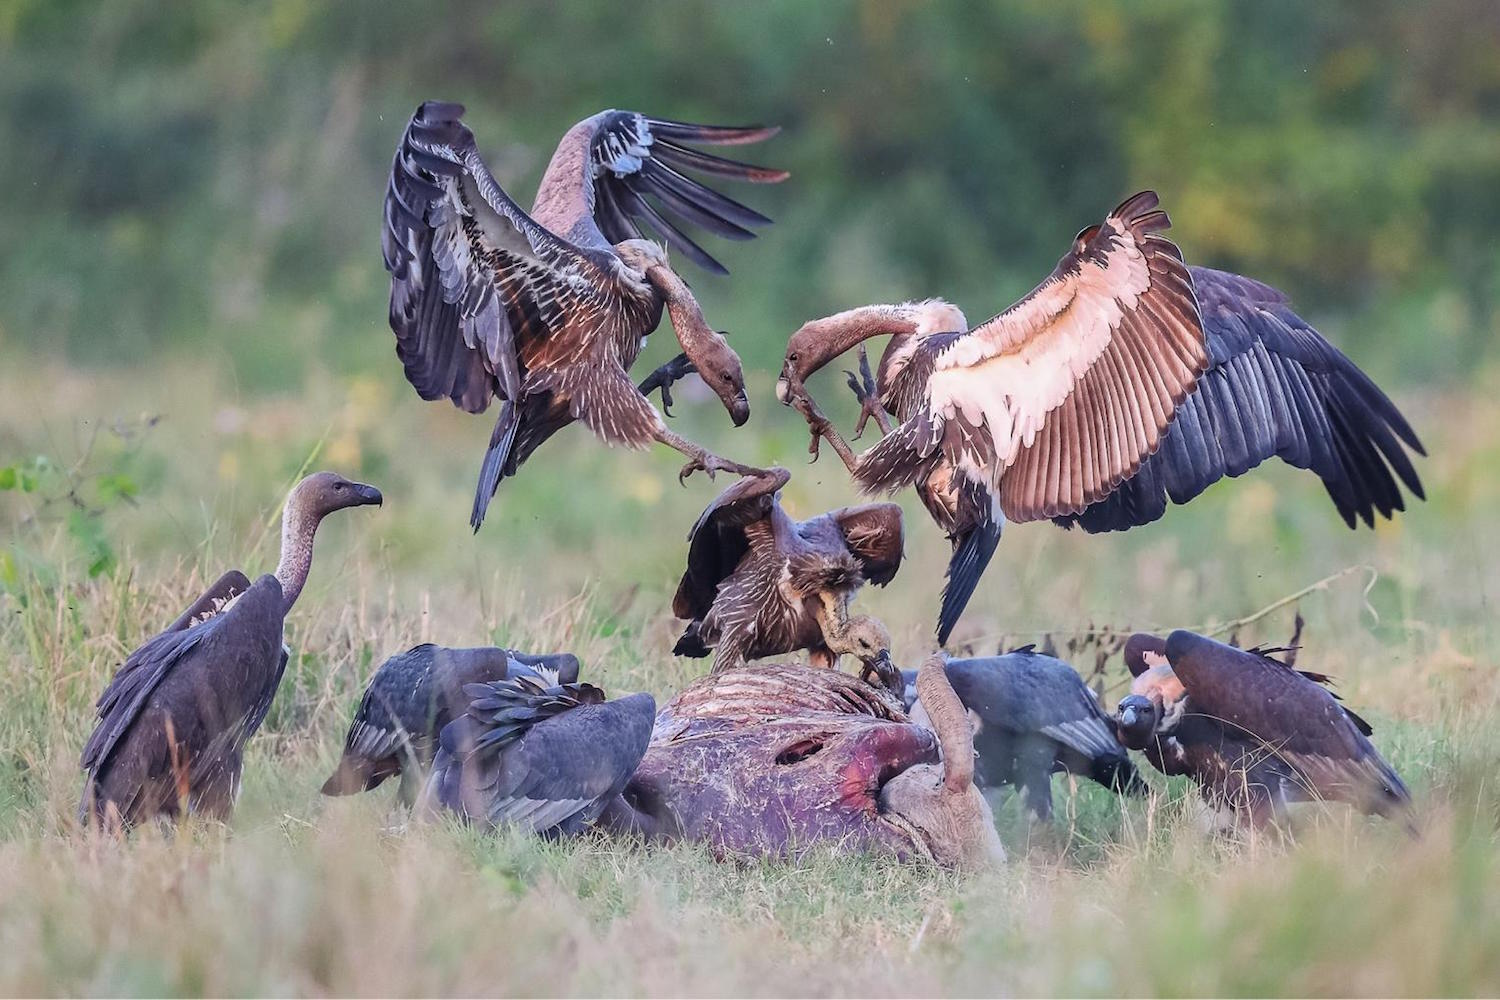 Nepal is a model for vulture conservation